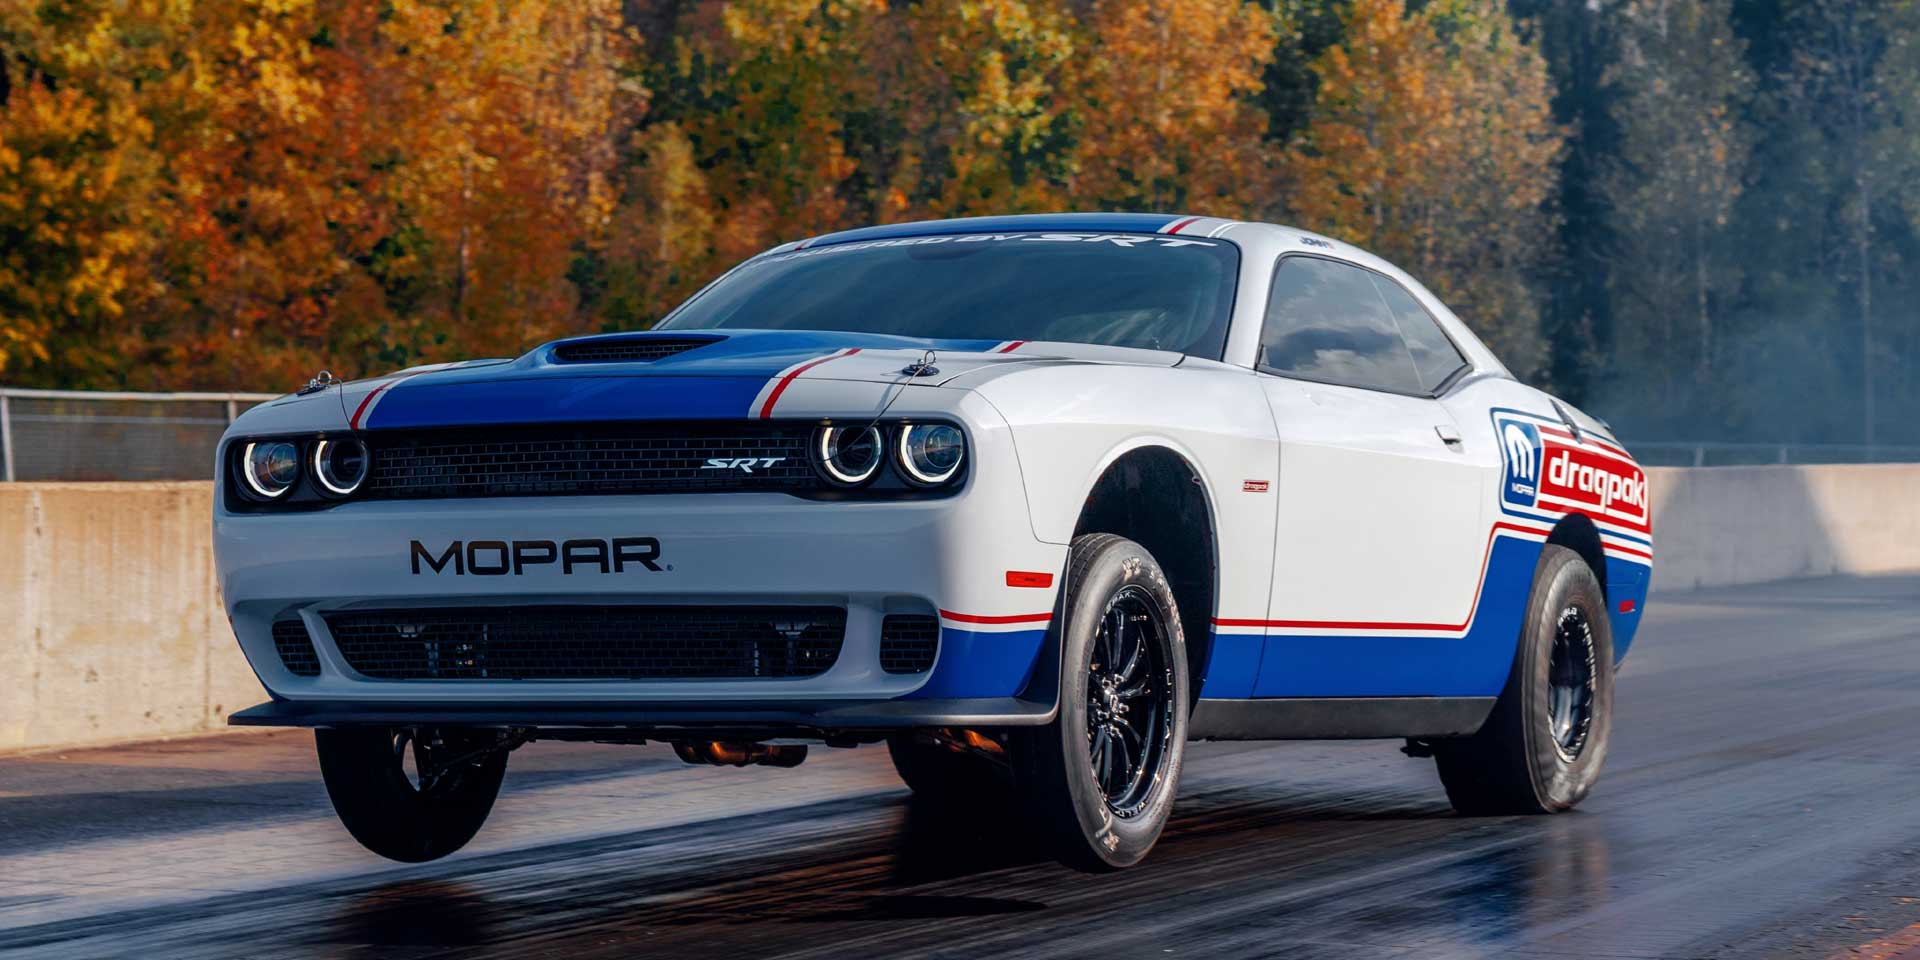 2020 dodge challenger drag pak vehicles on display chicago auto show 2020 dodge challenger drag pak